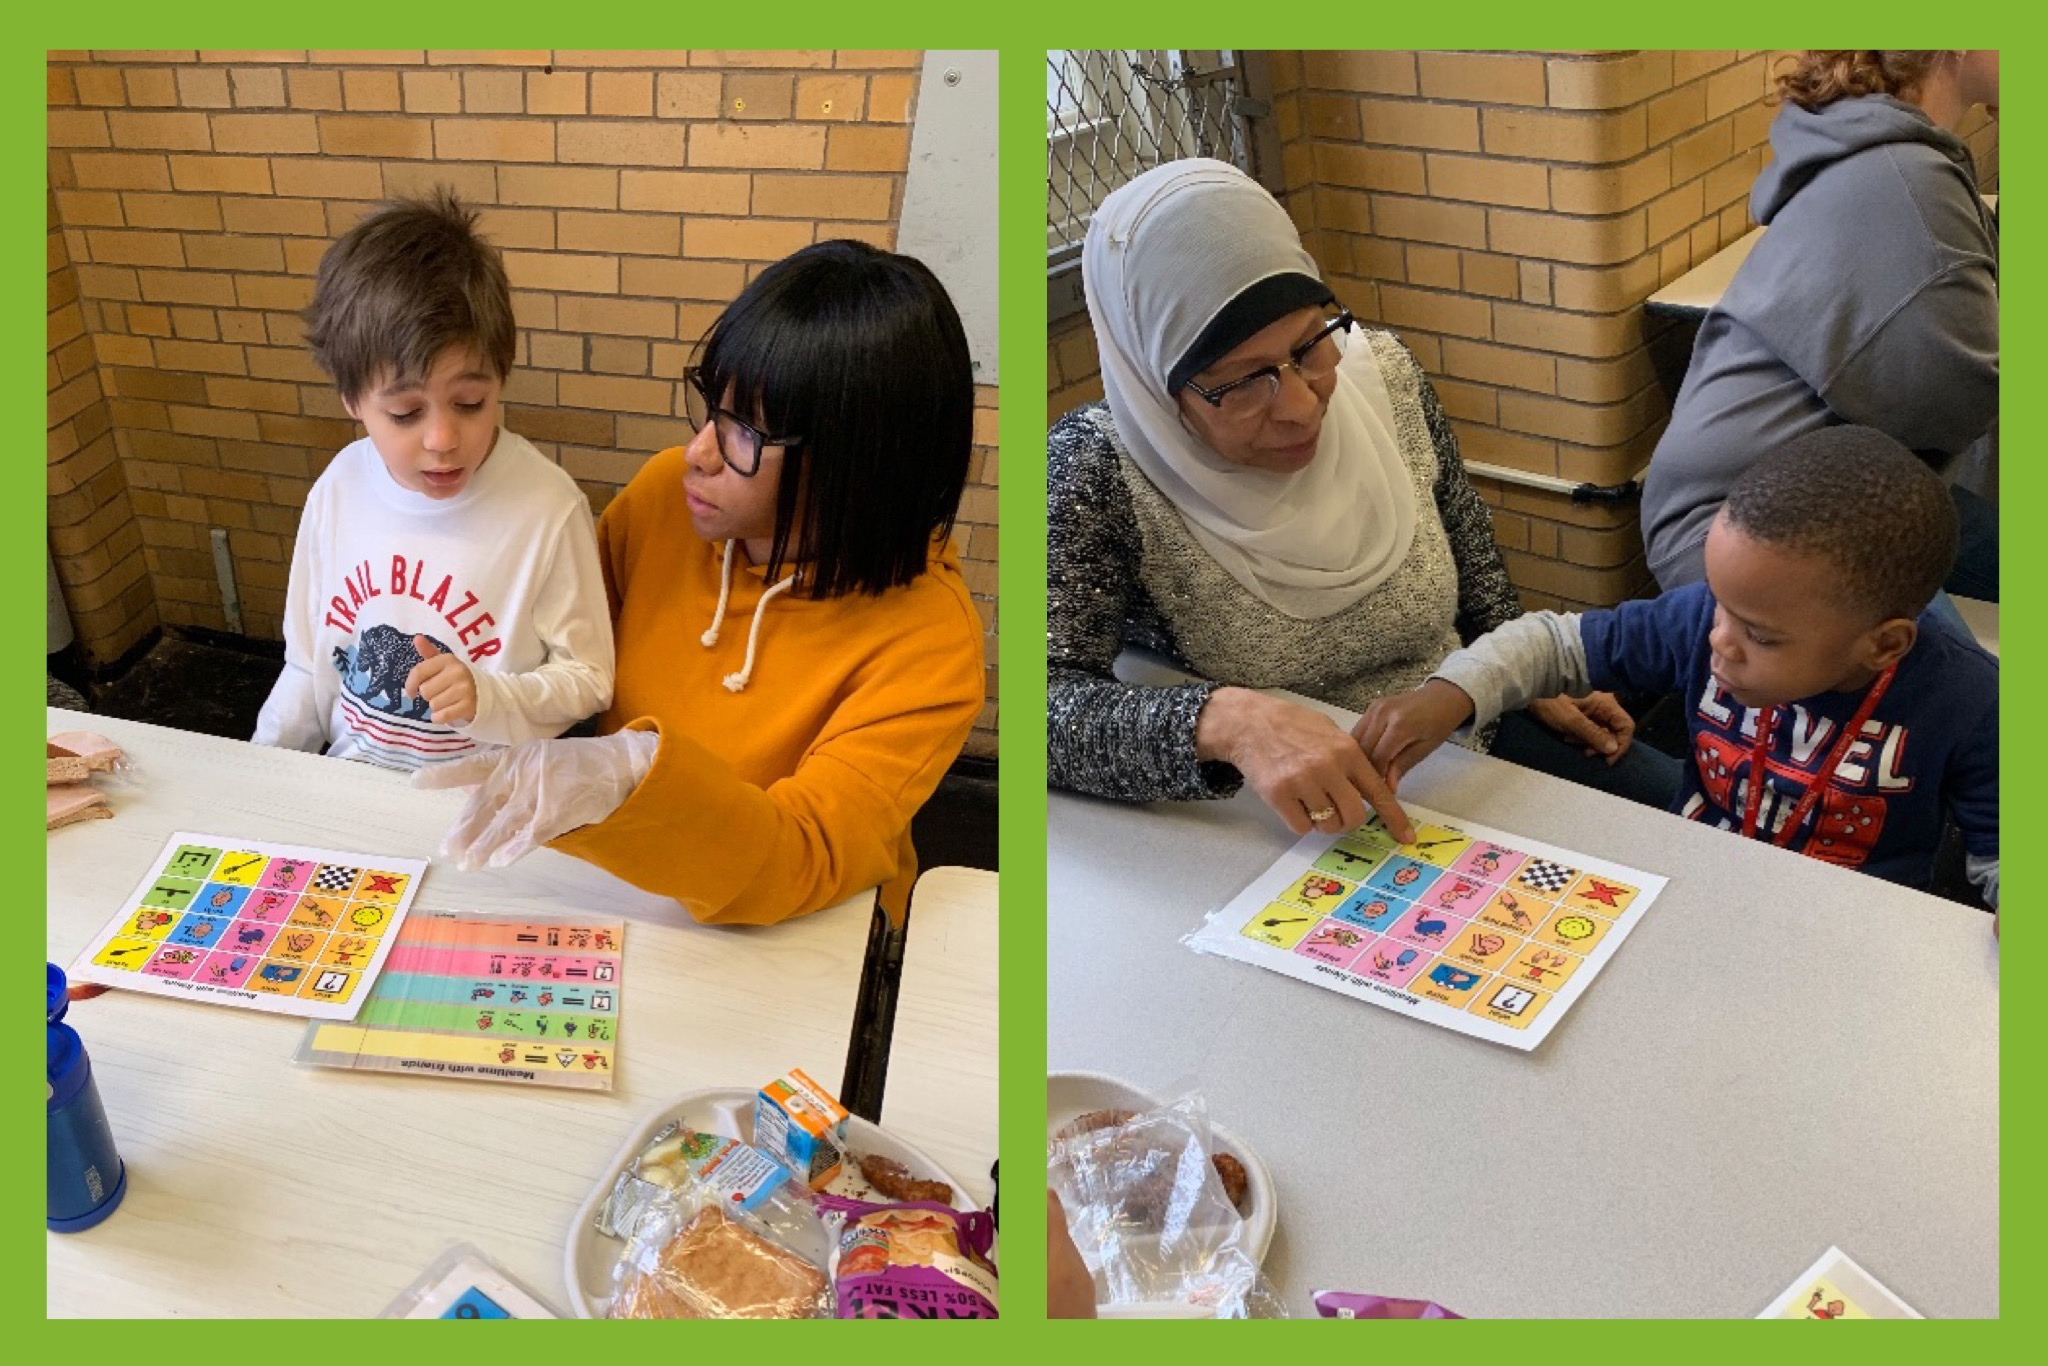 Teachers and students eating together using picture boards and social scripts to facilitate conversations during lunchtime.